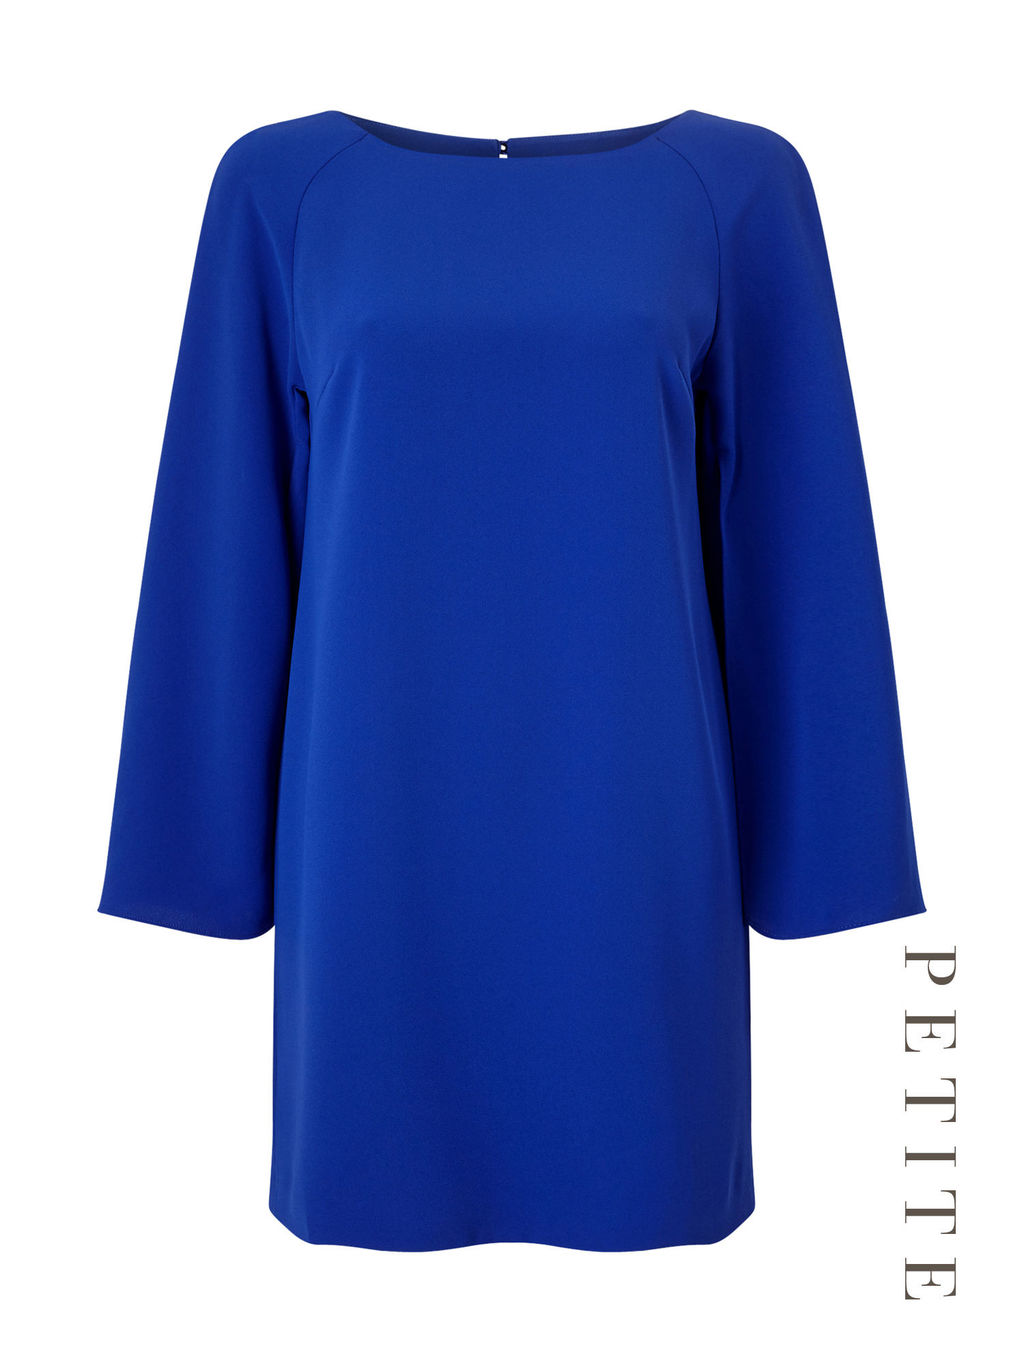 Petite Split Sleeve Tunic - neckline: slash/boat neckline; pattern: plain; style: tunic; predominant colour: royal blue; occasions: casual, work, creative work; fibres: polyester/polyamide - 100%; fit: body skimming; length: mid thigh; sleeve length: 3/4 length; sleeve style: standard; pattern type: fabric; texture group: other - light to midweight; season: a/w 2016; wardrobe: highlight